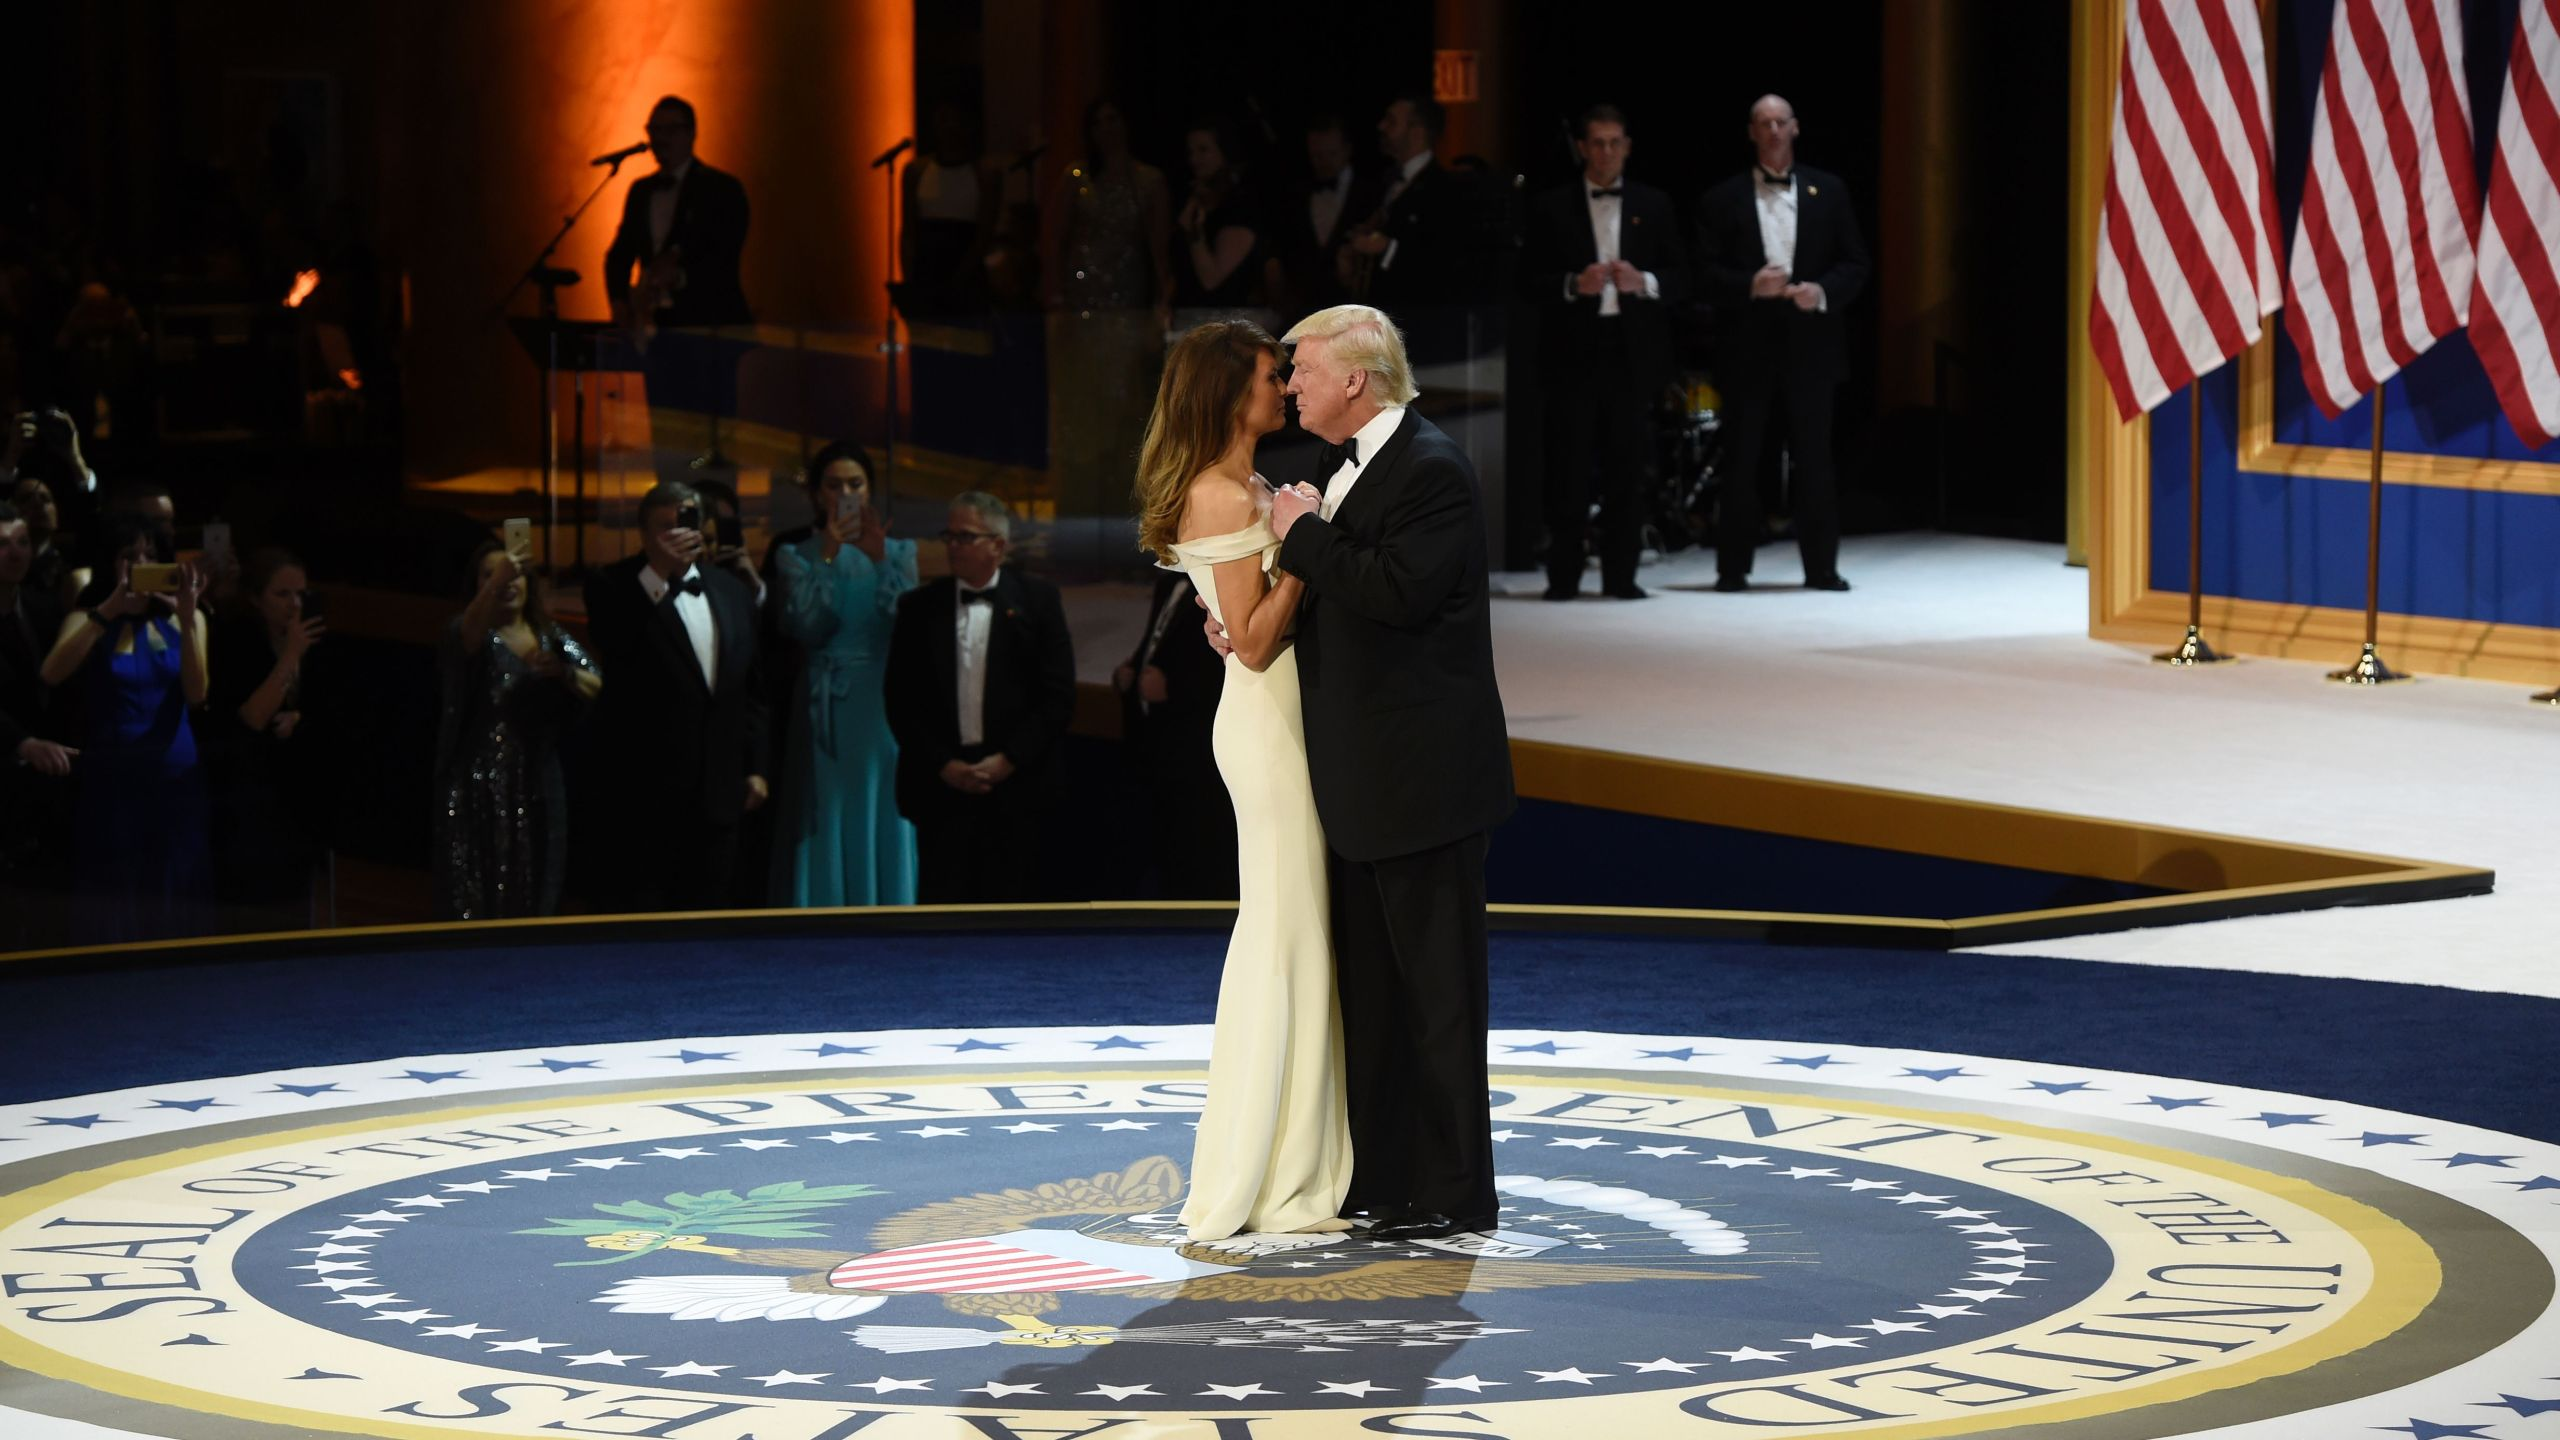 Donald Trump and First Lady Melania Trump dance on the U.S. President seal during the Salute to Our Armed Services Inaugural Ball at the National Building Museum in Washington, D.C., on Jan. 20, 2017. (Credit: Saul Loeb/AFP/Getty Images)